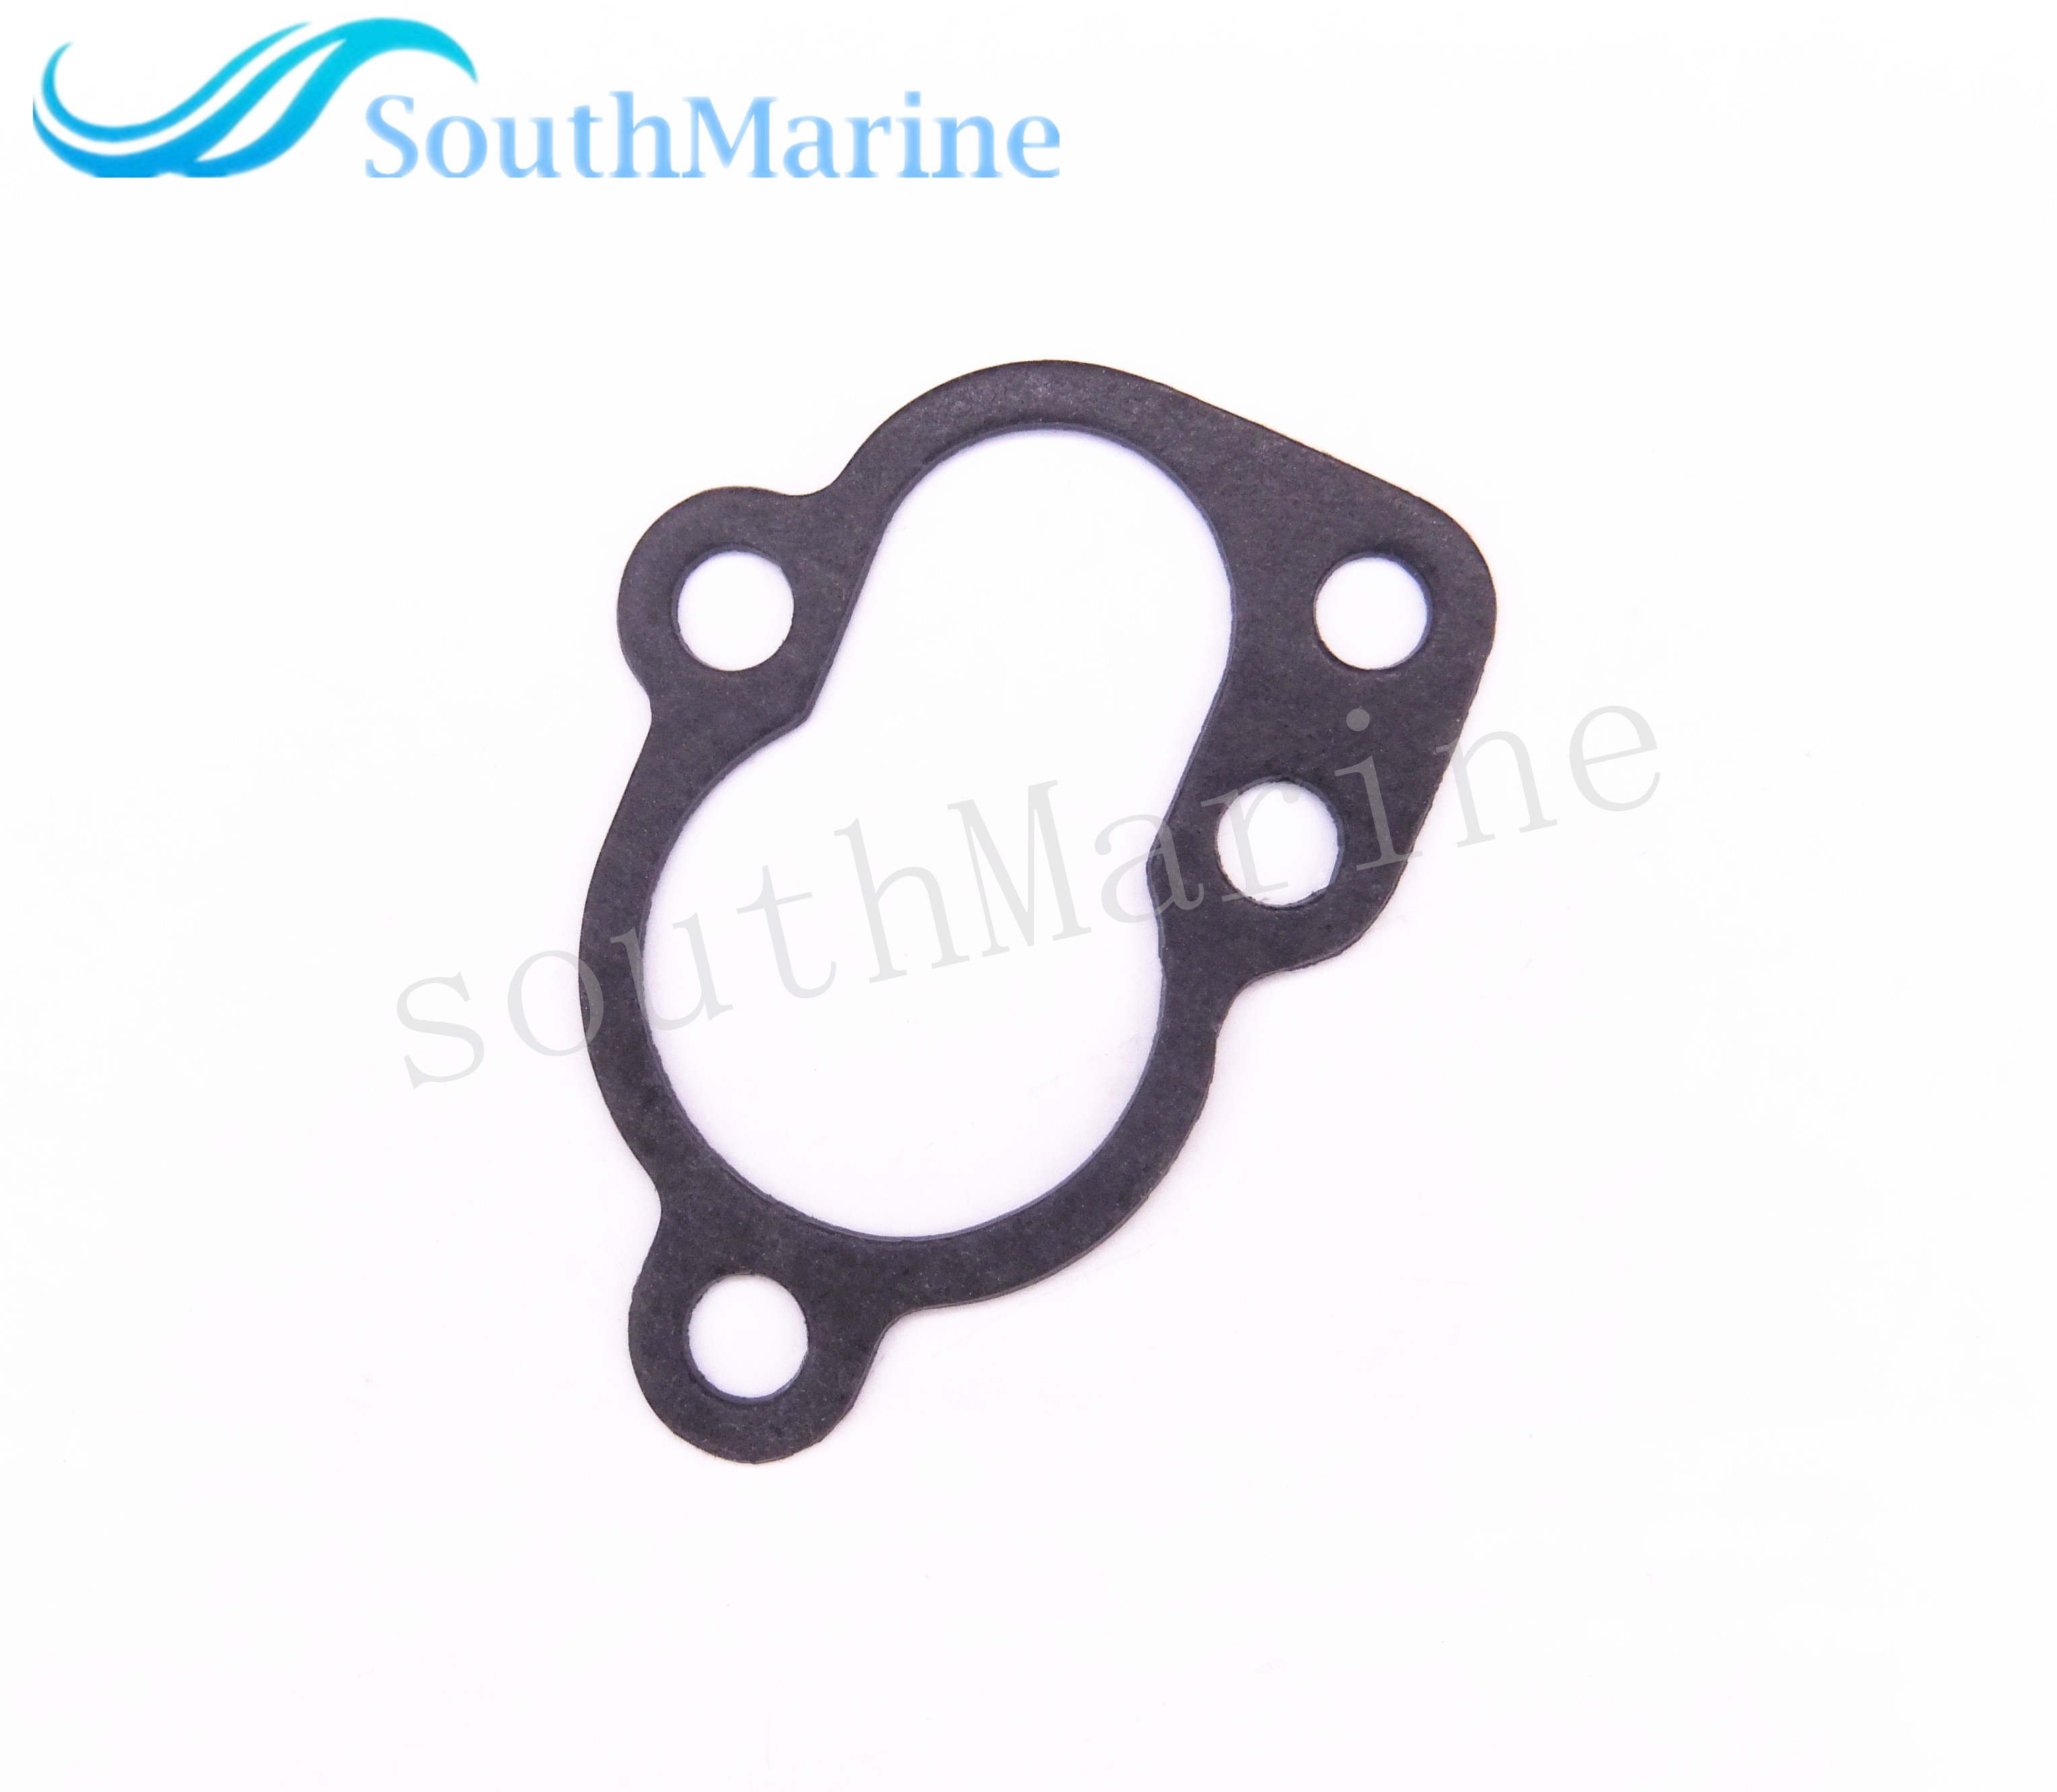 Outboard Engine 30F-01.04.00.04 Thermostat Cover Gasket for Hidea 2-Stroke 30F 25F Boat Motor Free Shipping